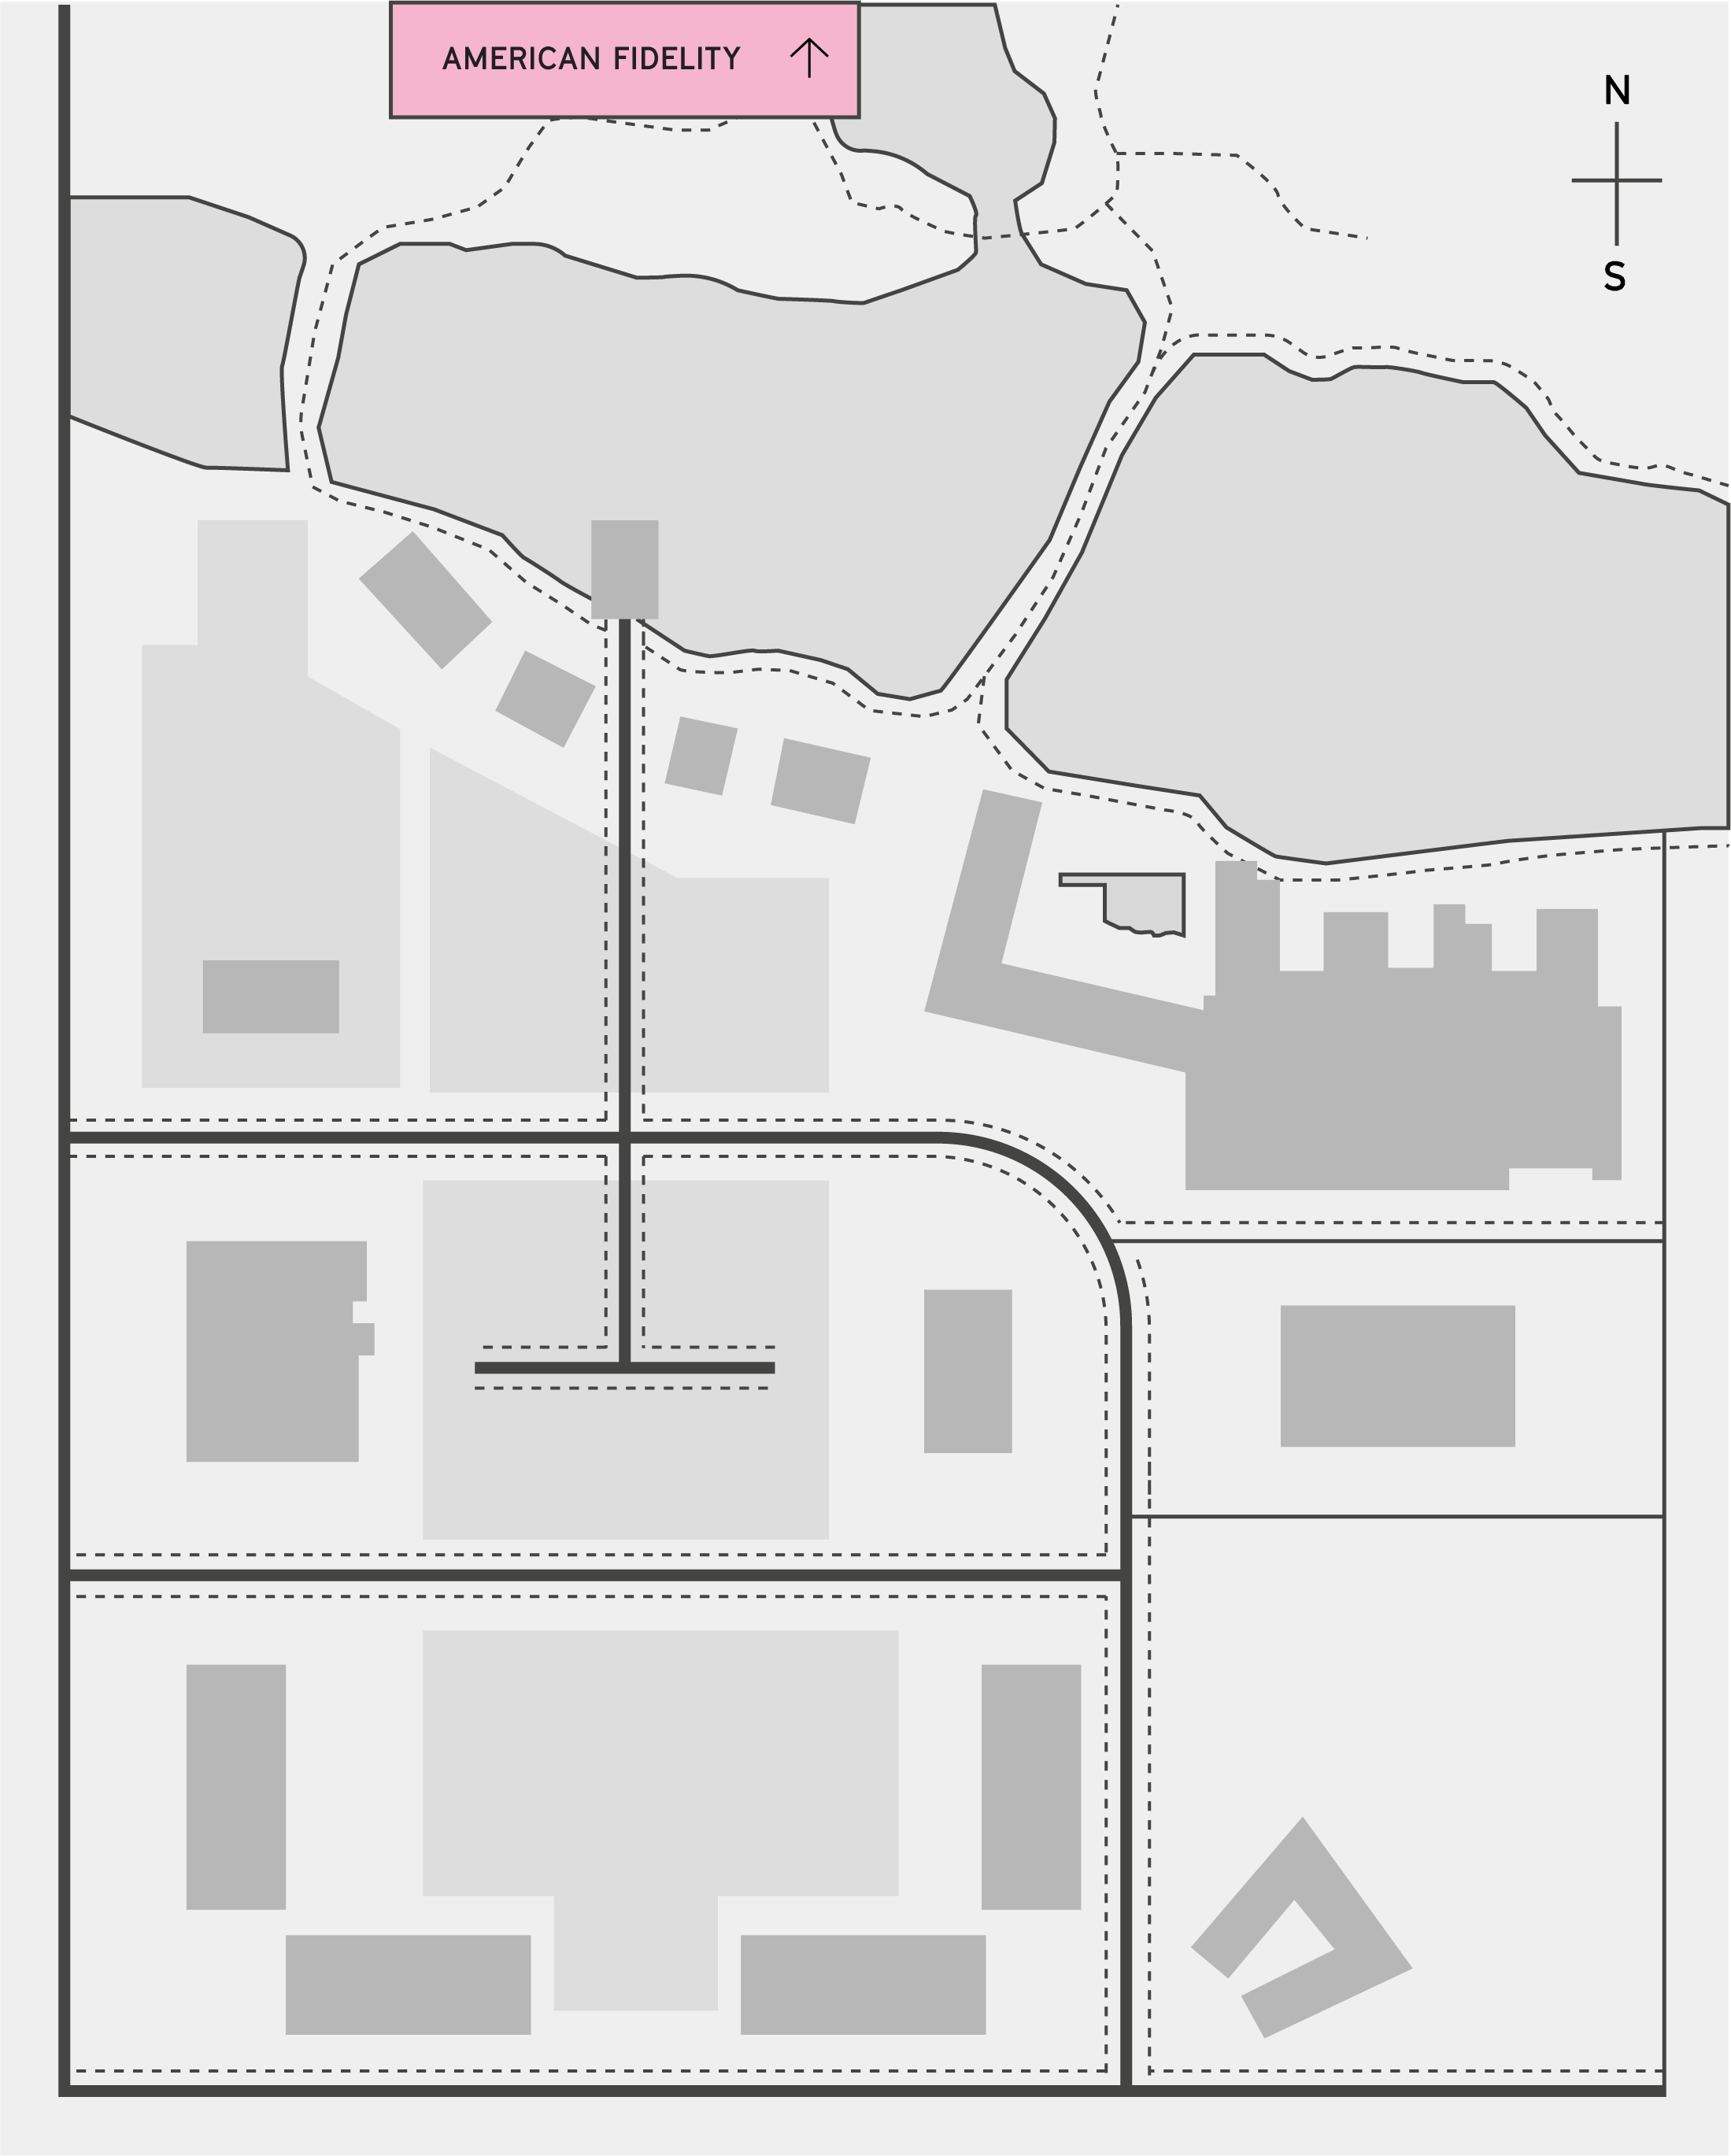 The half site map highlighting American Fidelity